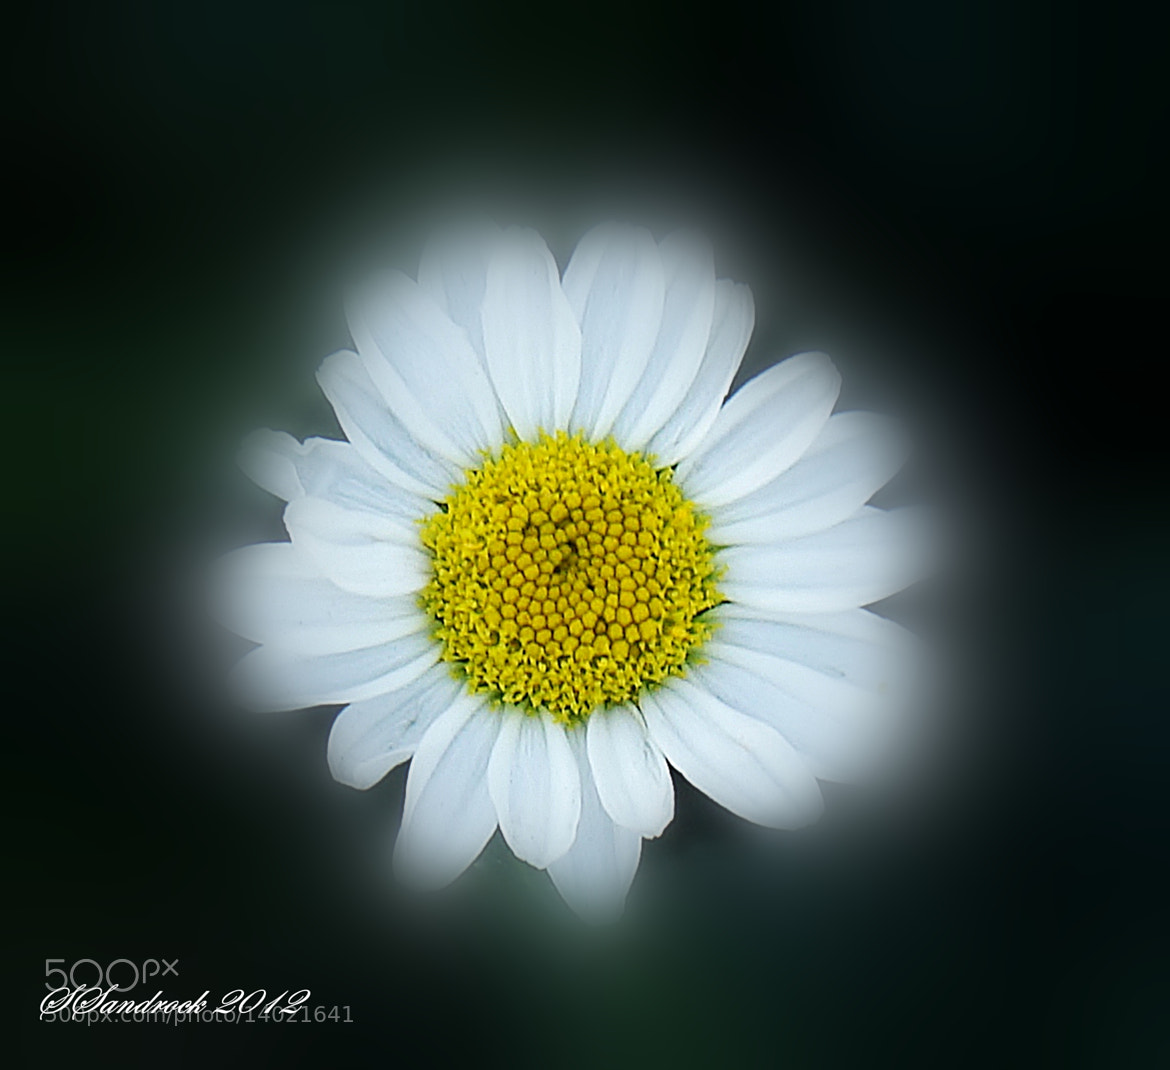 Photograph Glowing Daisy by Silvia Sandrock on 500px